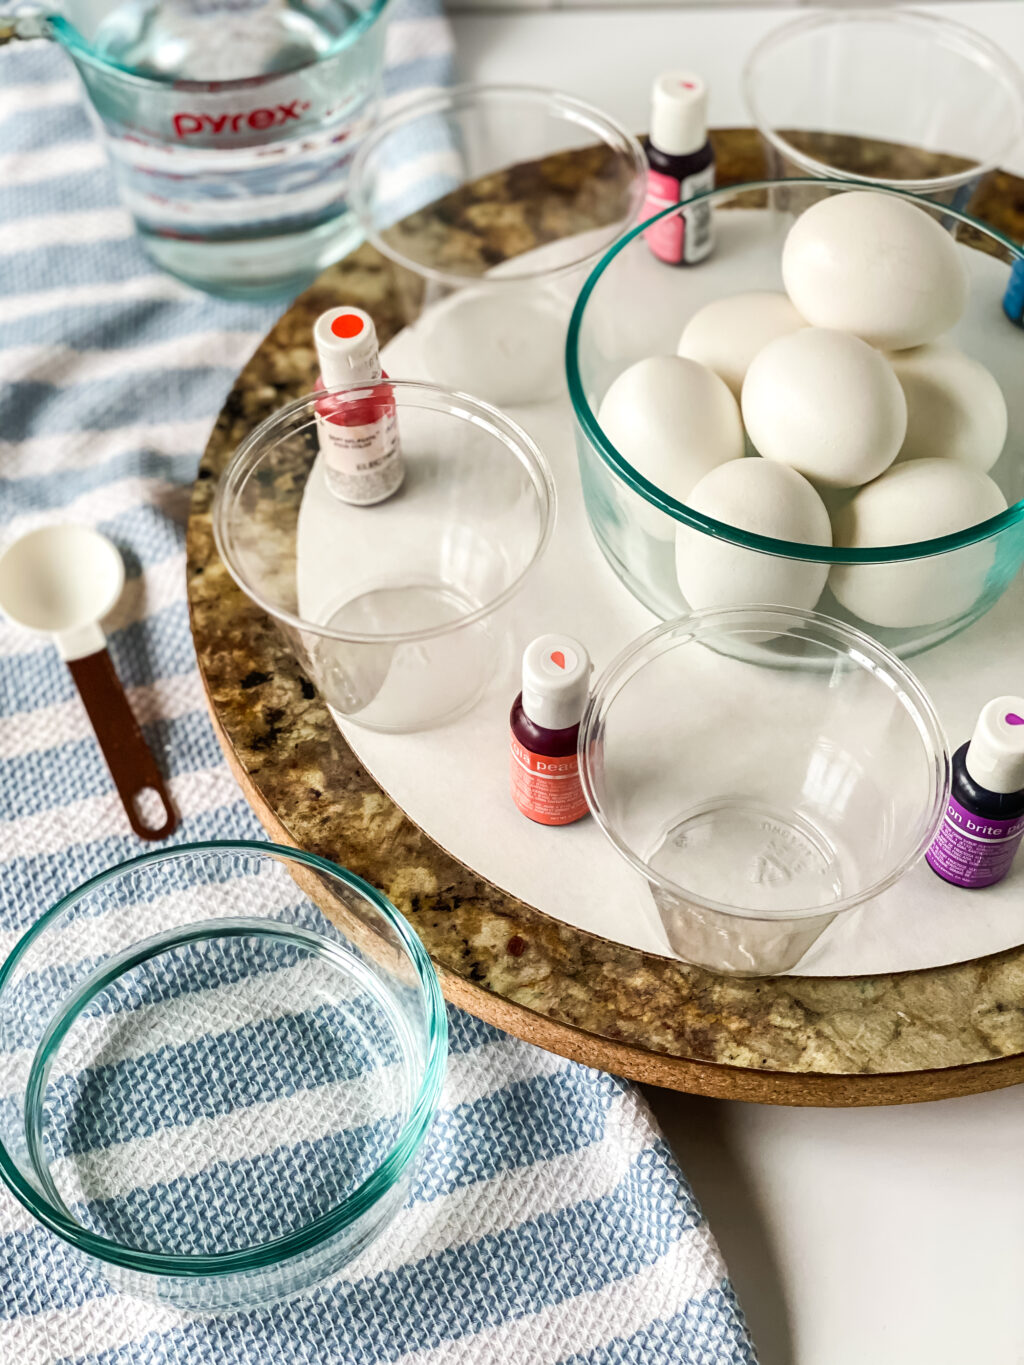 easter egg dying ingredients on table